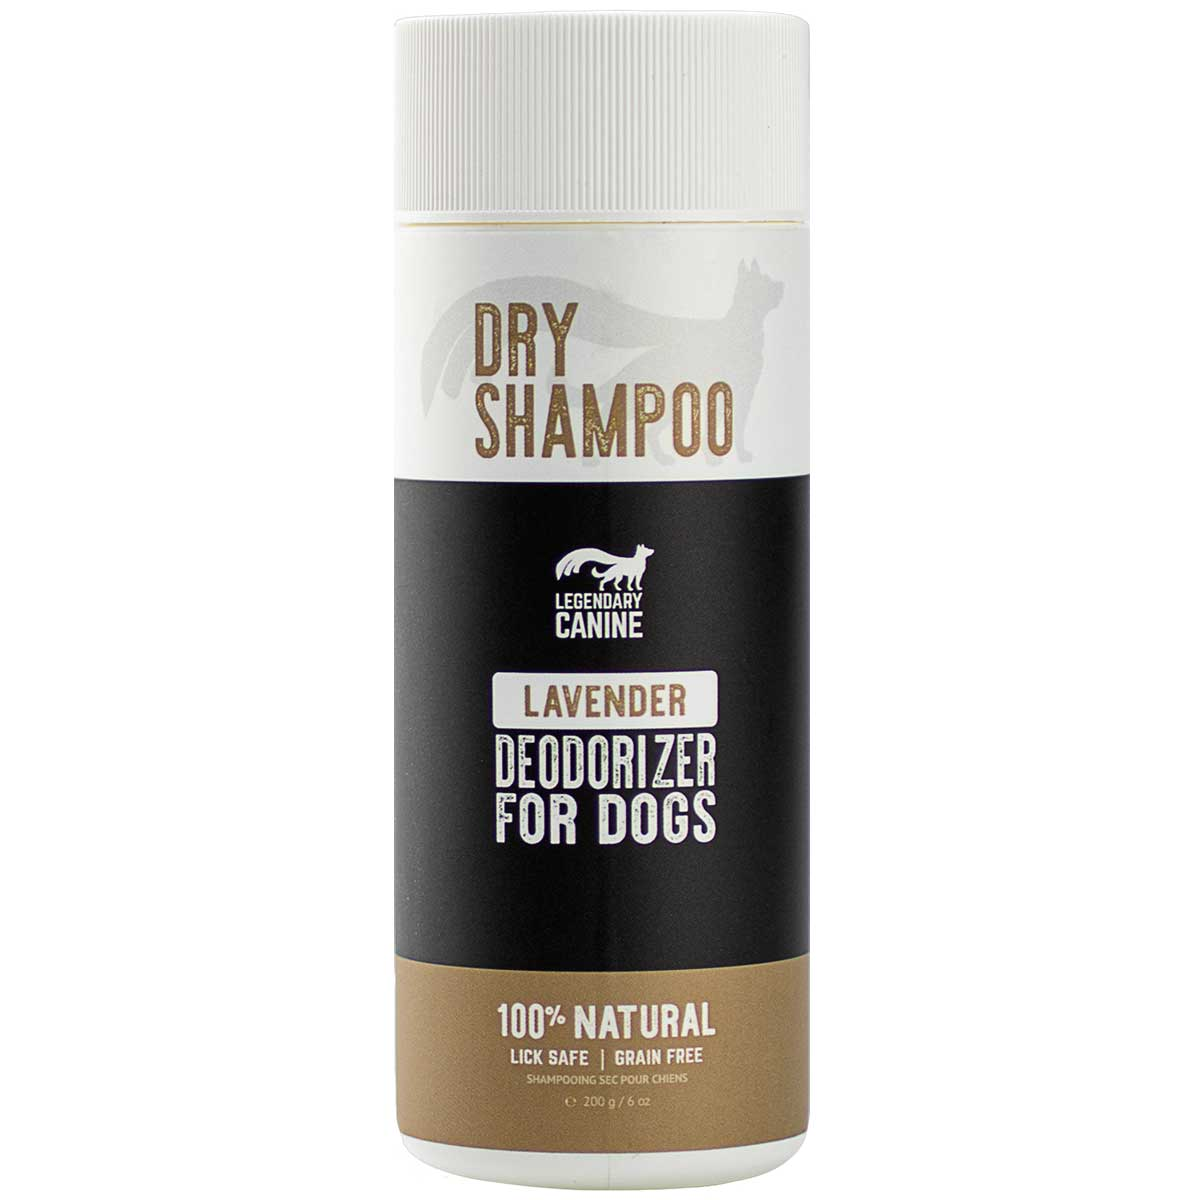 Legendary Canine All Natural Dry Dog Shampoo - 250ml